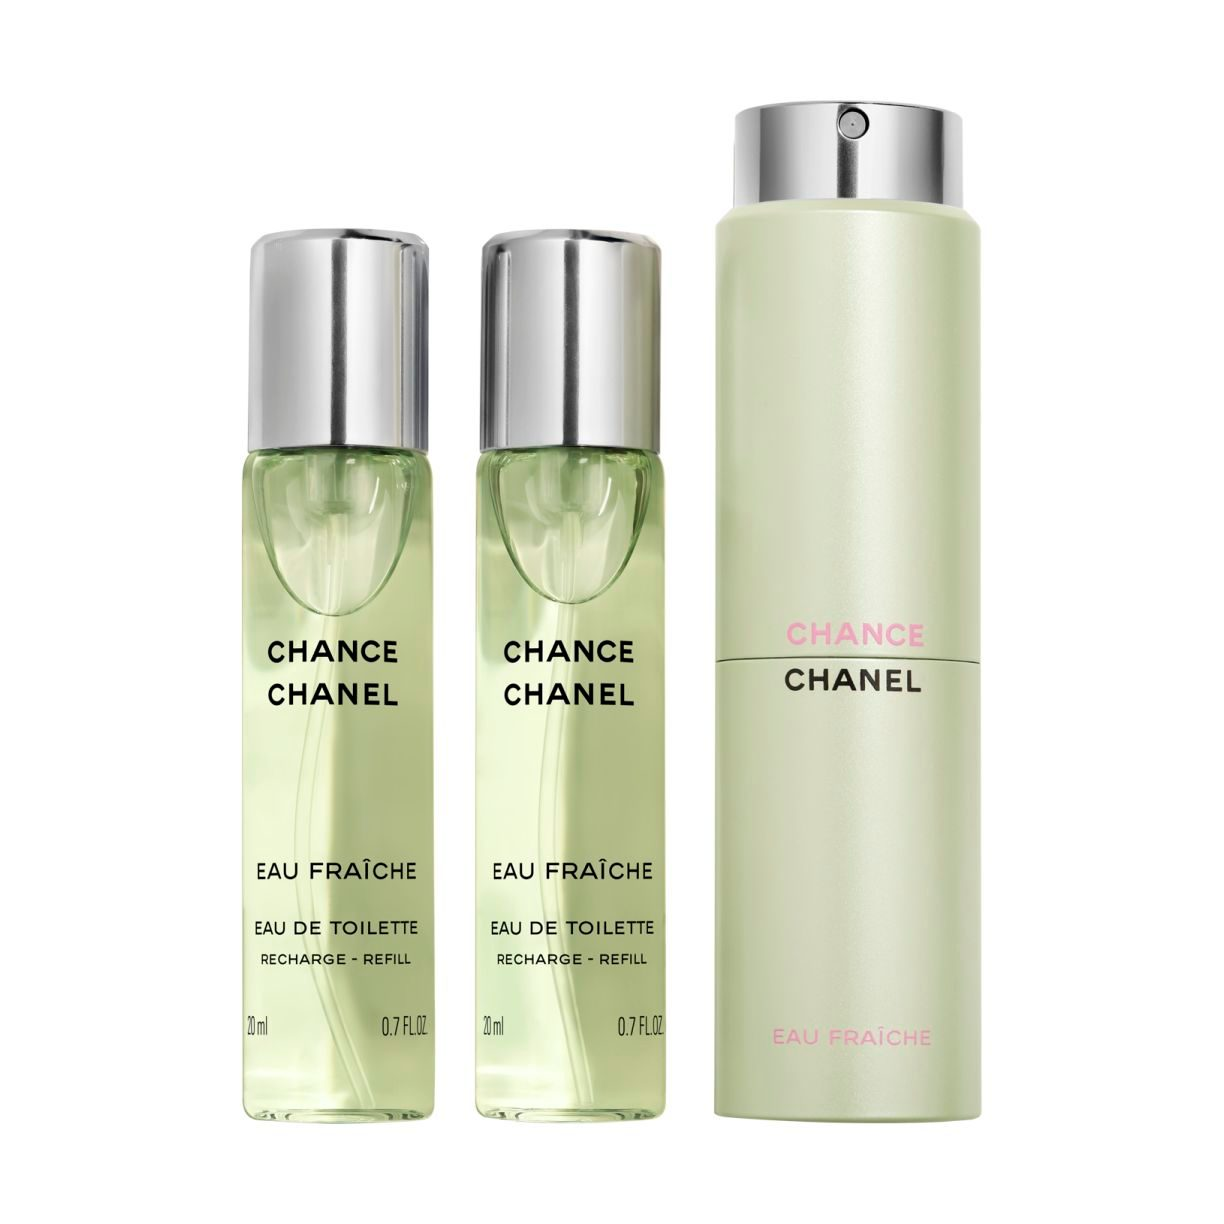 CHANCE EAU FRAICHE EAU DE TOILETTE TWIST AND SPRAY